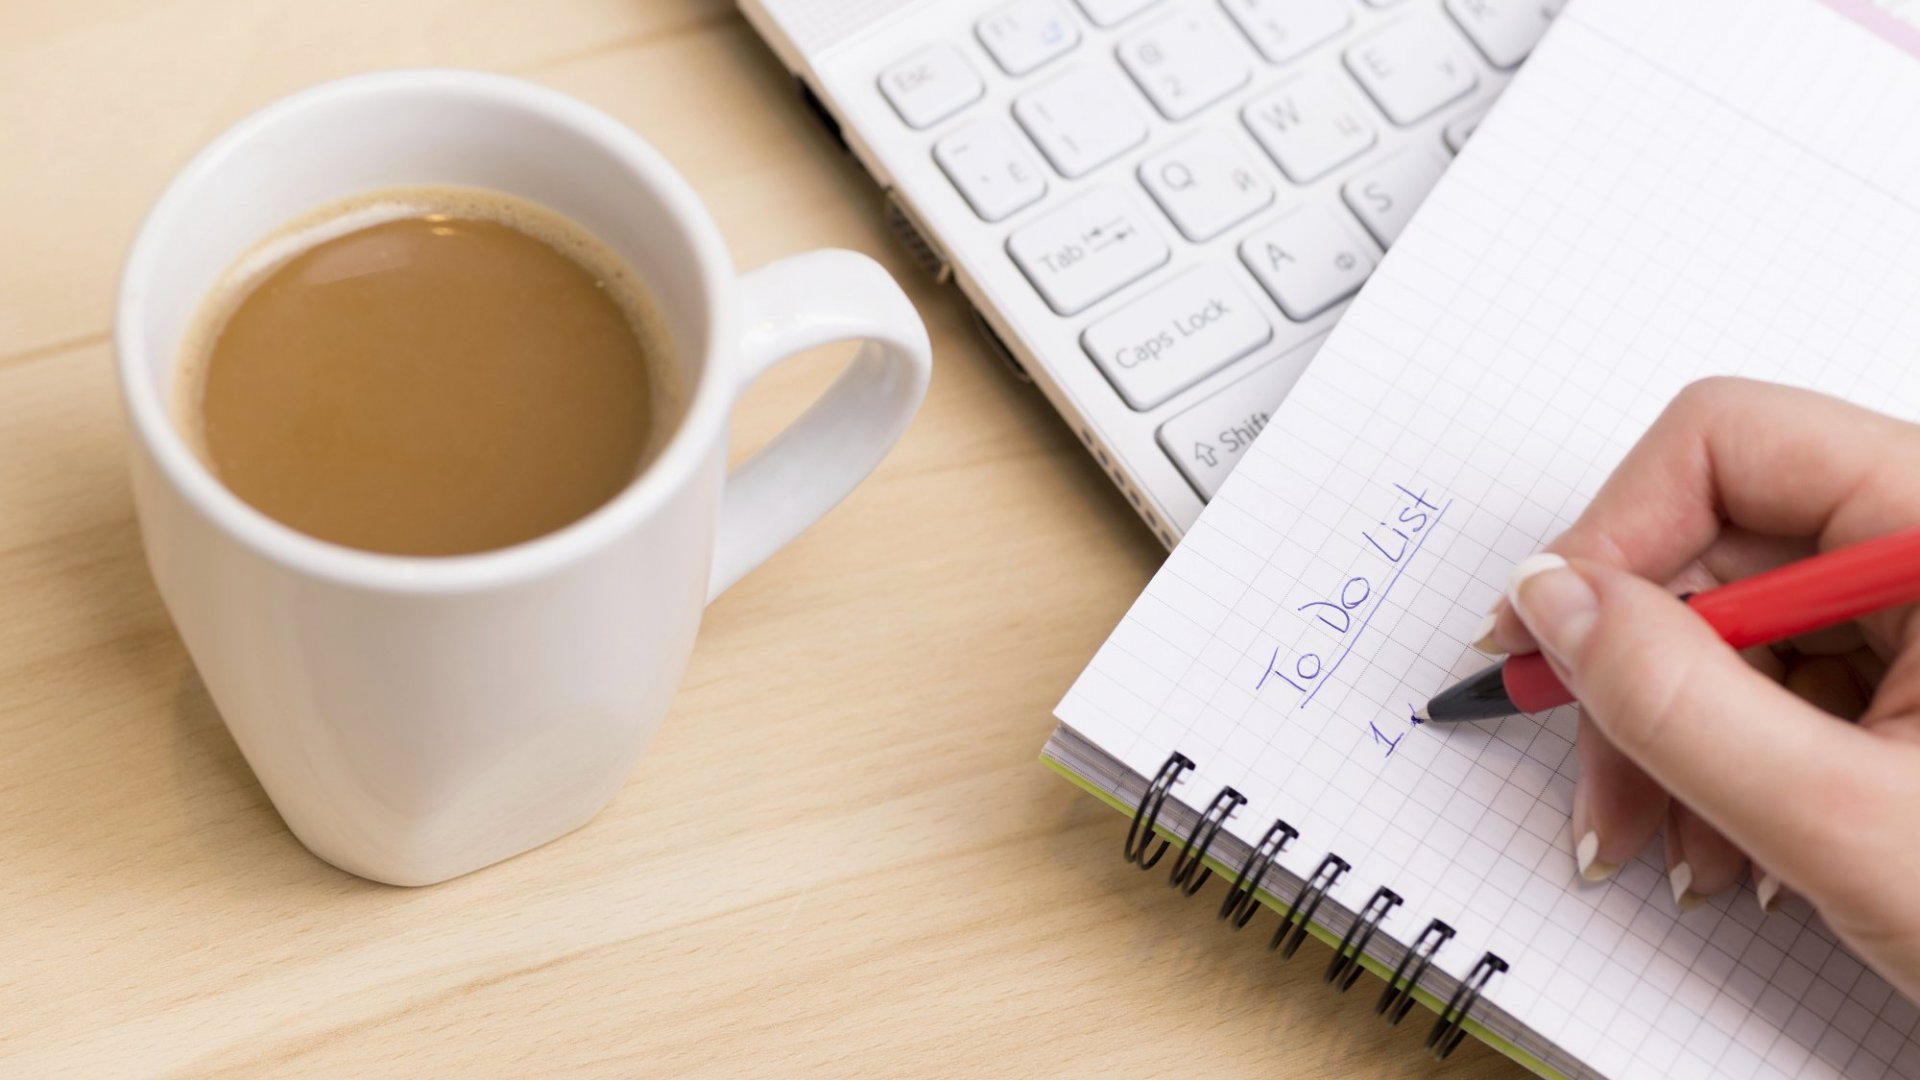 3 Tips for Sticking to Self-Imposed Deadlines